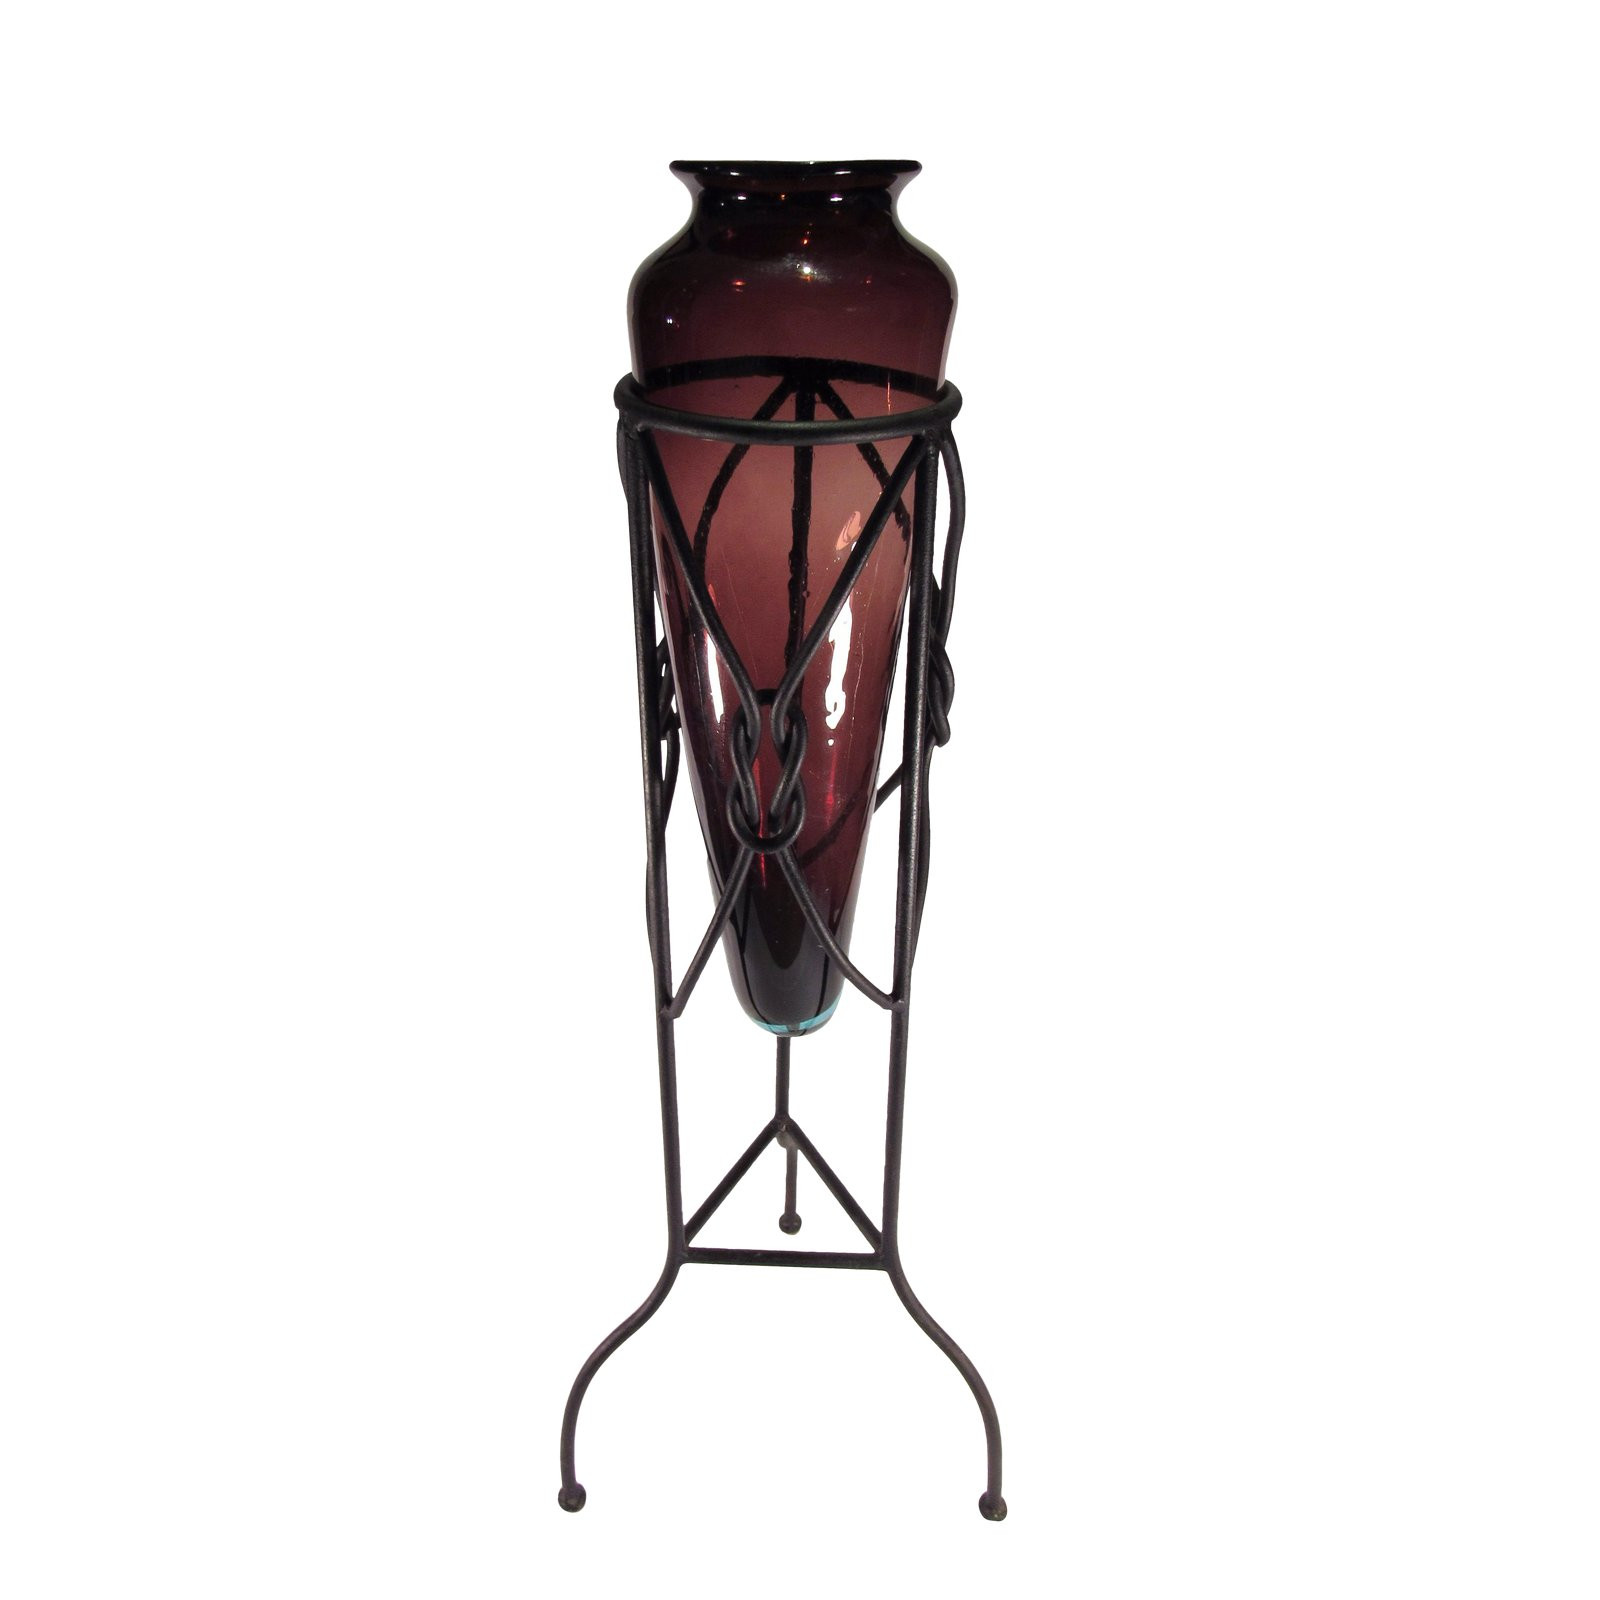 glass cylinder vases with flared rims 9 in of large amphora style glass vase in iron tripod stand chairish with large amphora style glass vase in iron tripod stand 8677